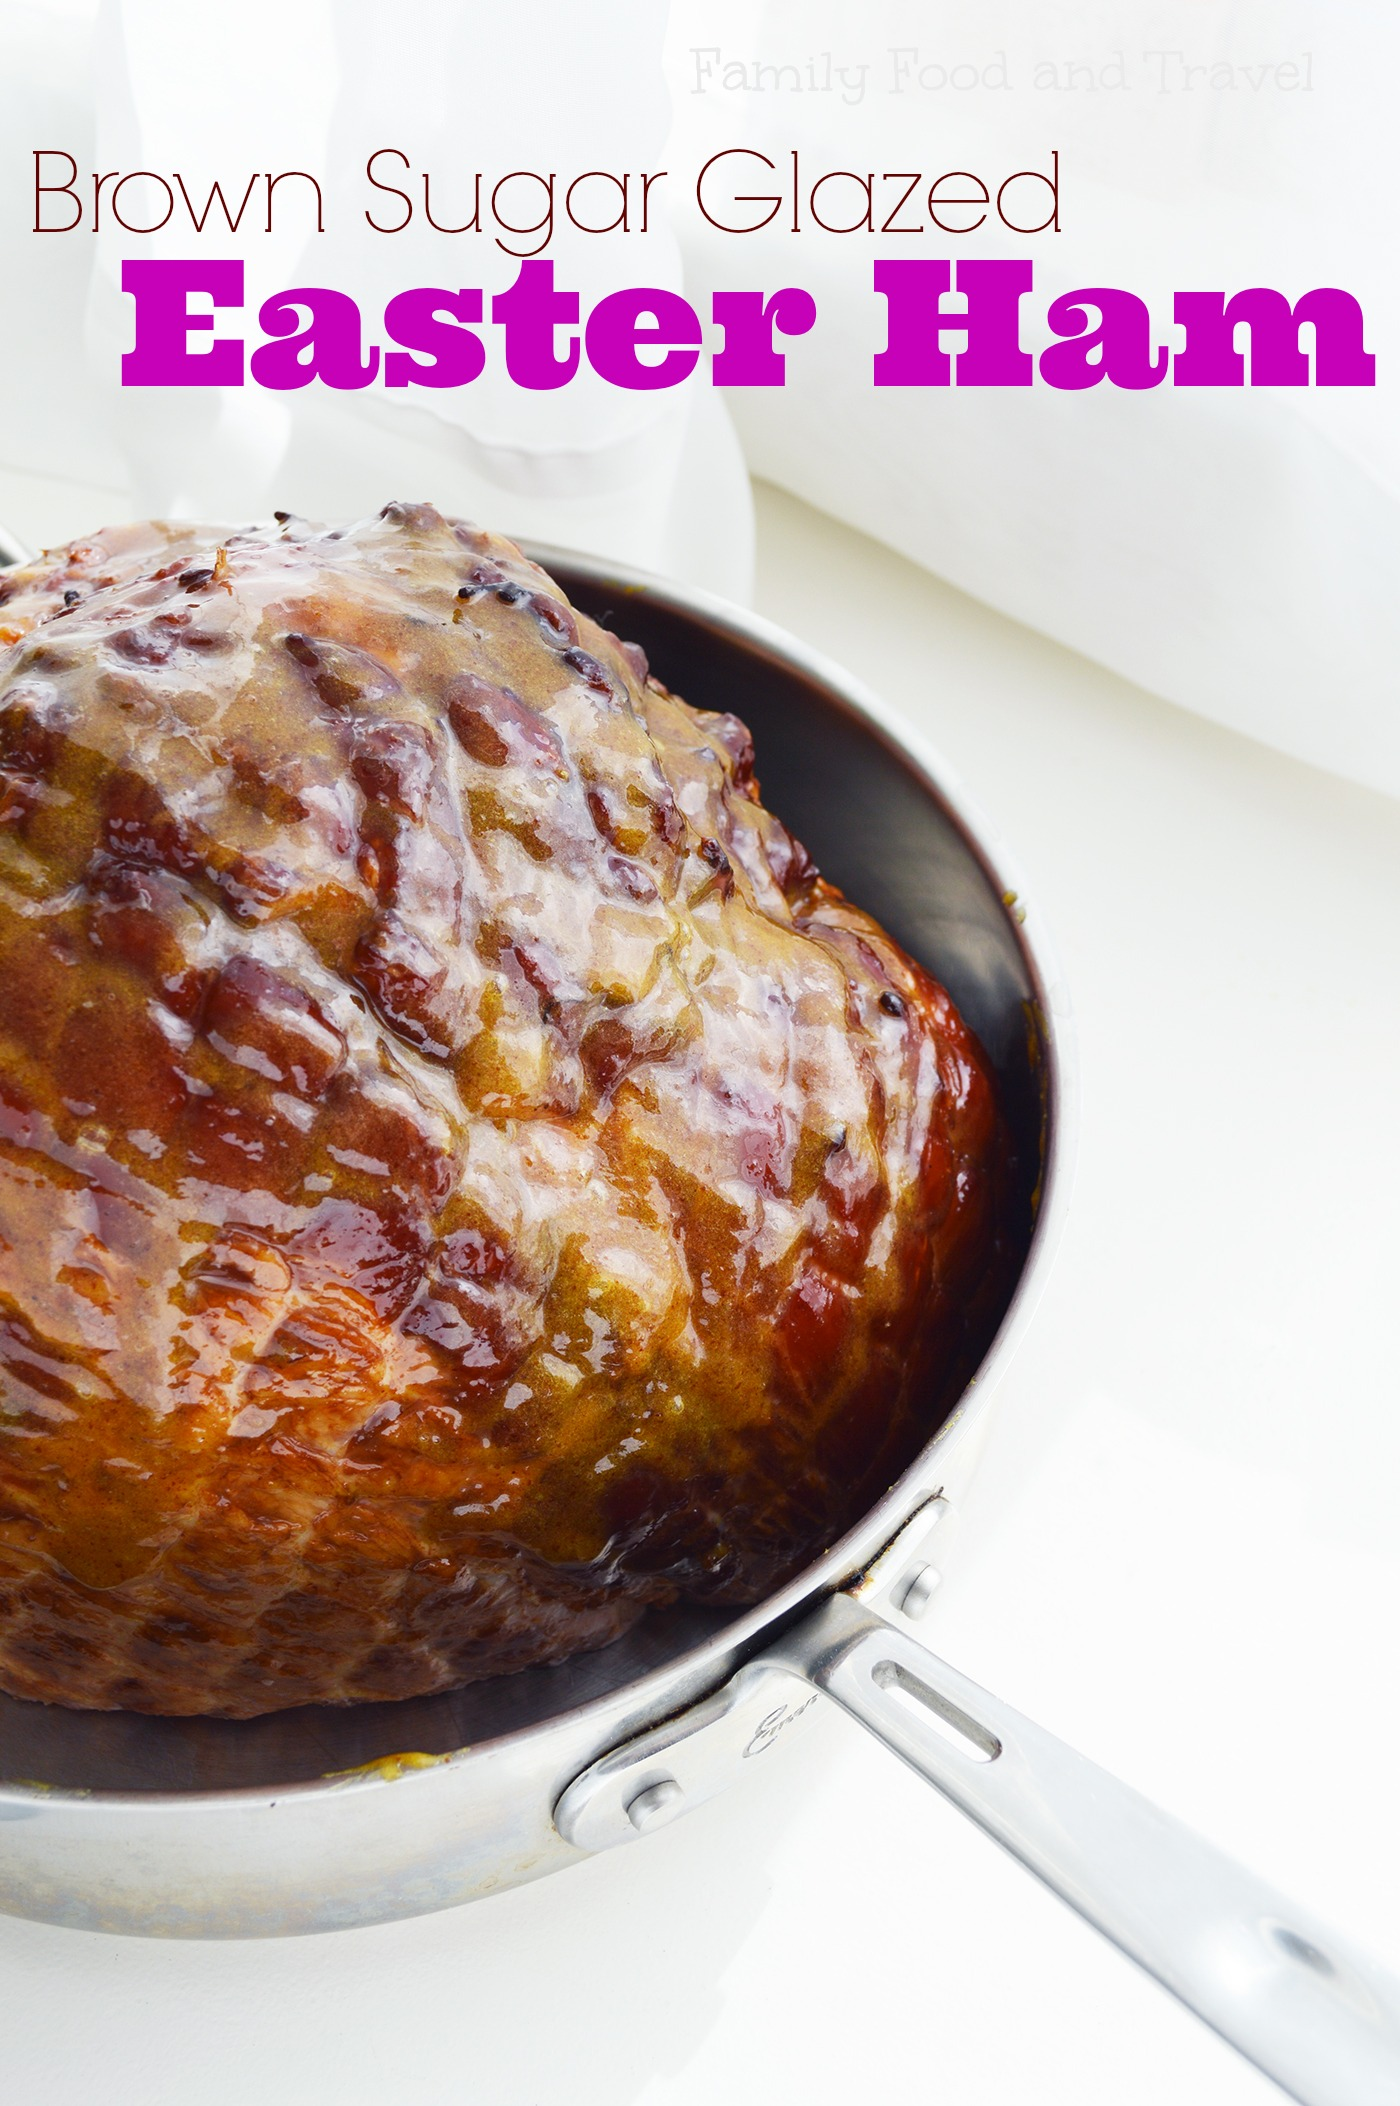 Brown-Sugar-Glazed-Easter-Ham-.jpg